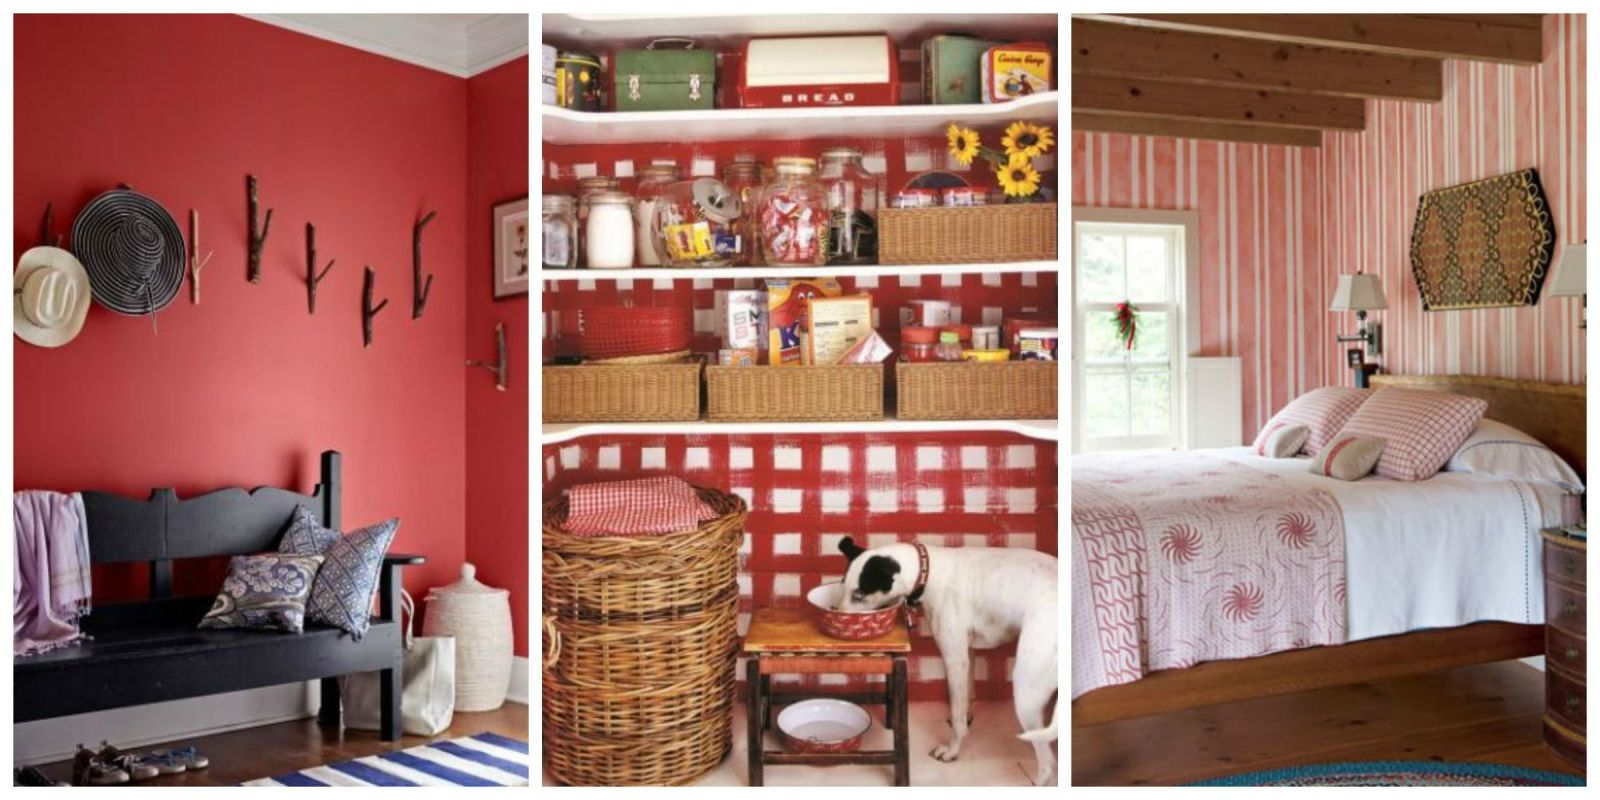 Decorating With Red Ideas For Red Rooms And Home Decor